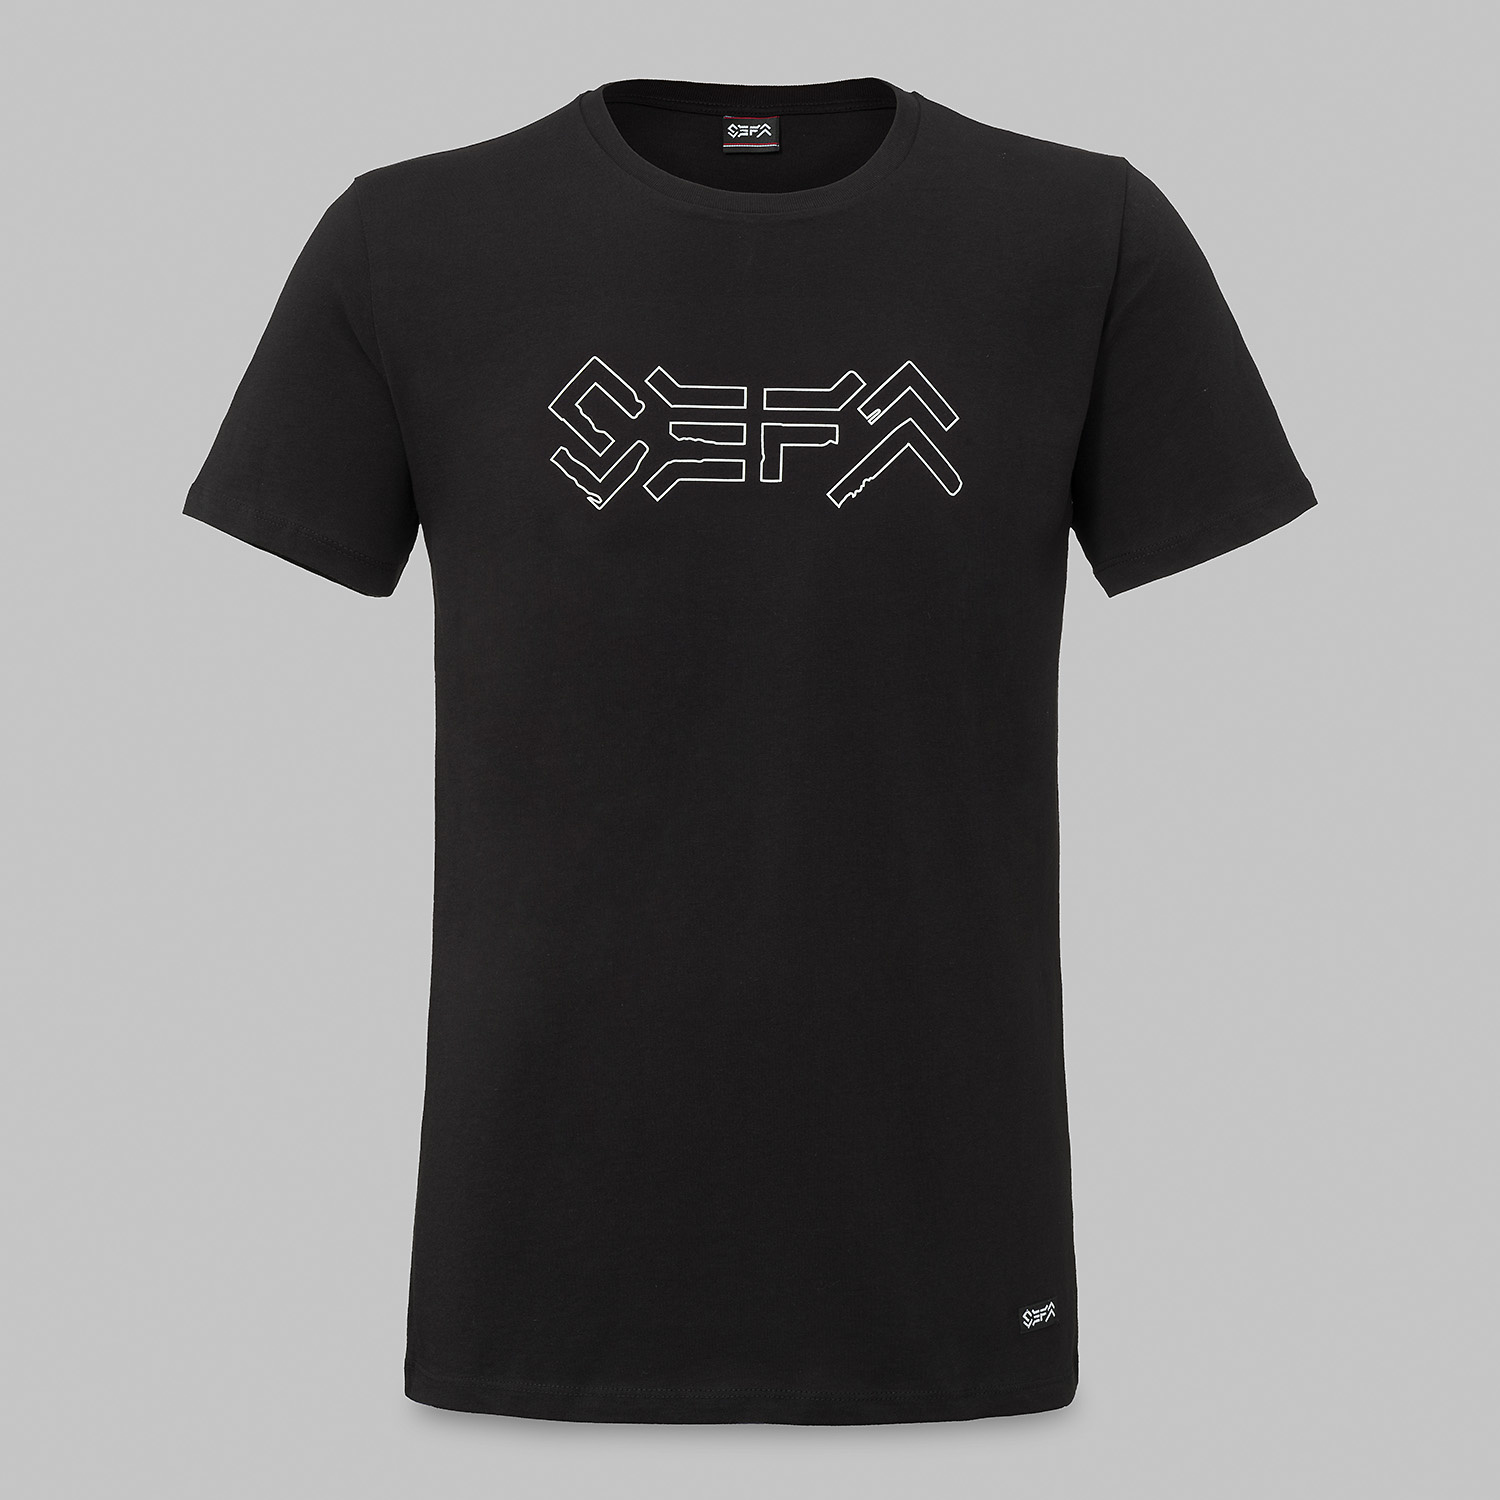 Sefa t-shirt black/white-2